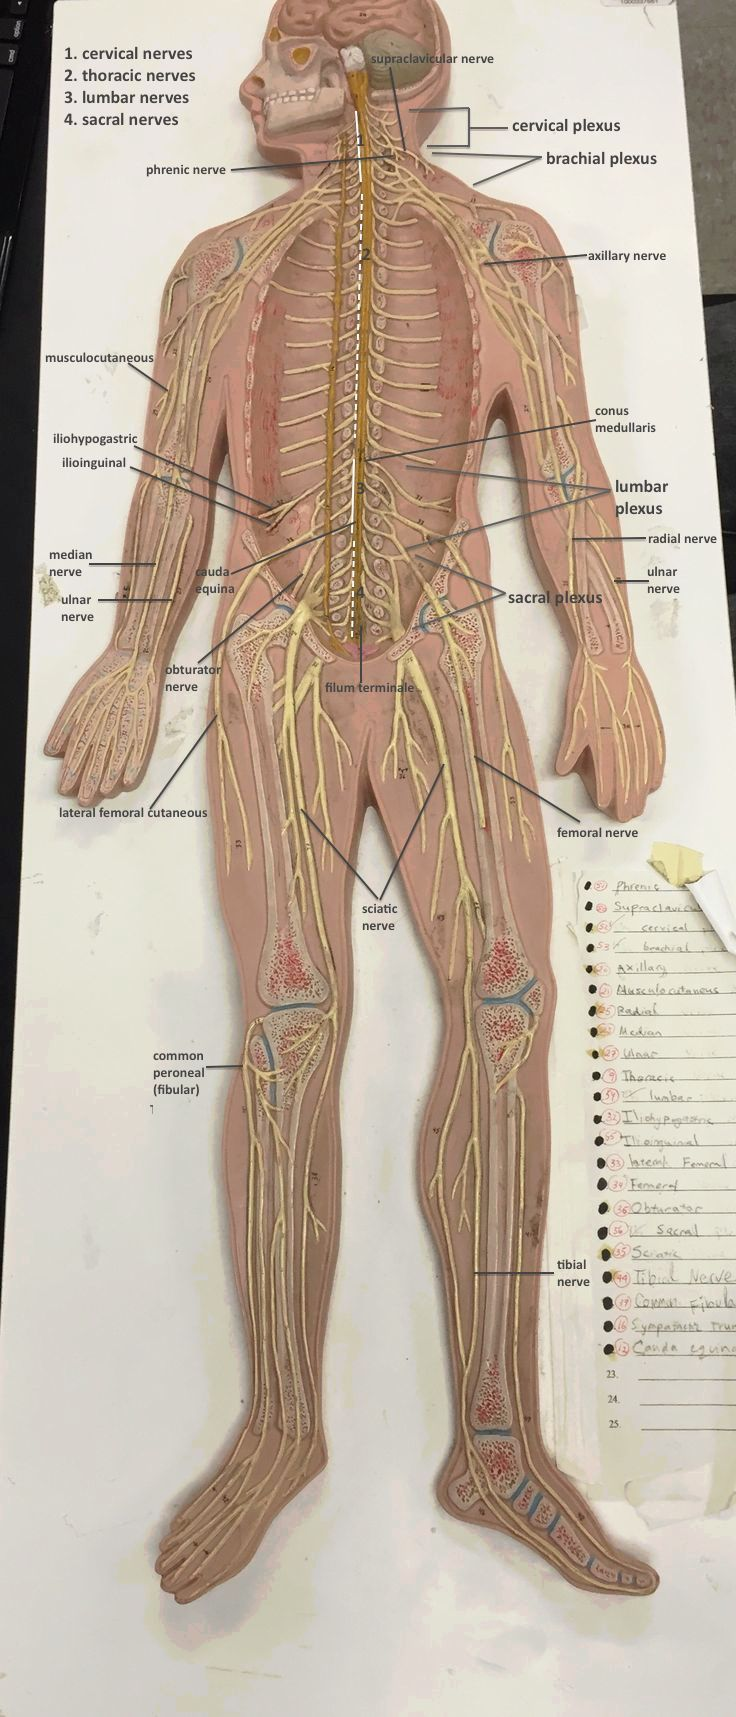 Spinal Nerves Labelled on LACC model | Anatomy/Physiology ...